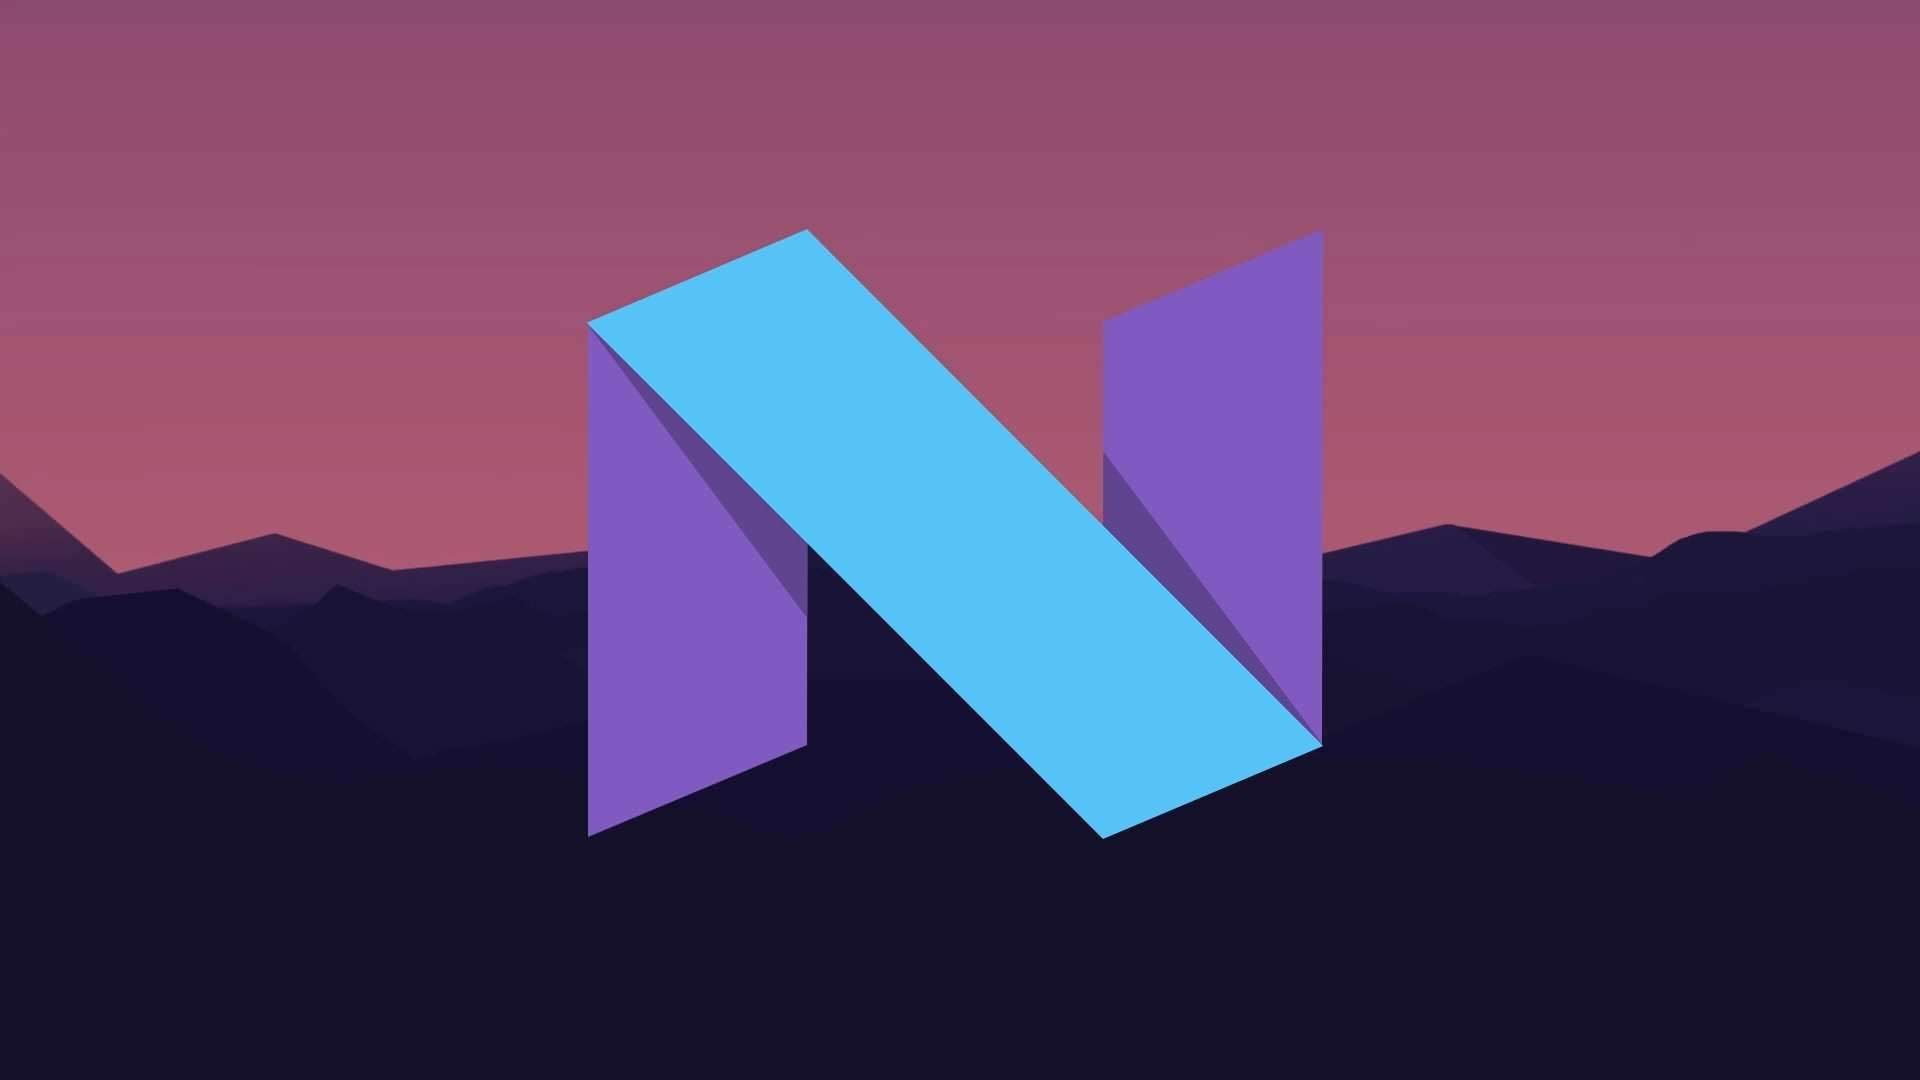 Android 70 Nougat Wallpaper